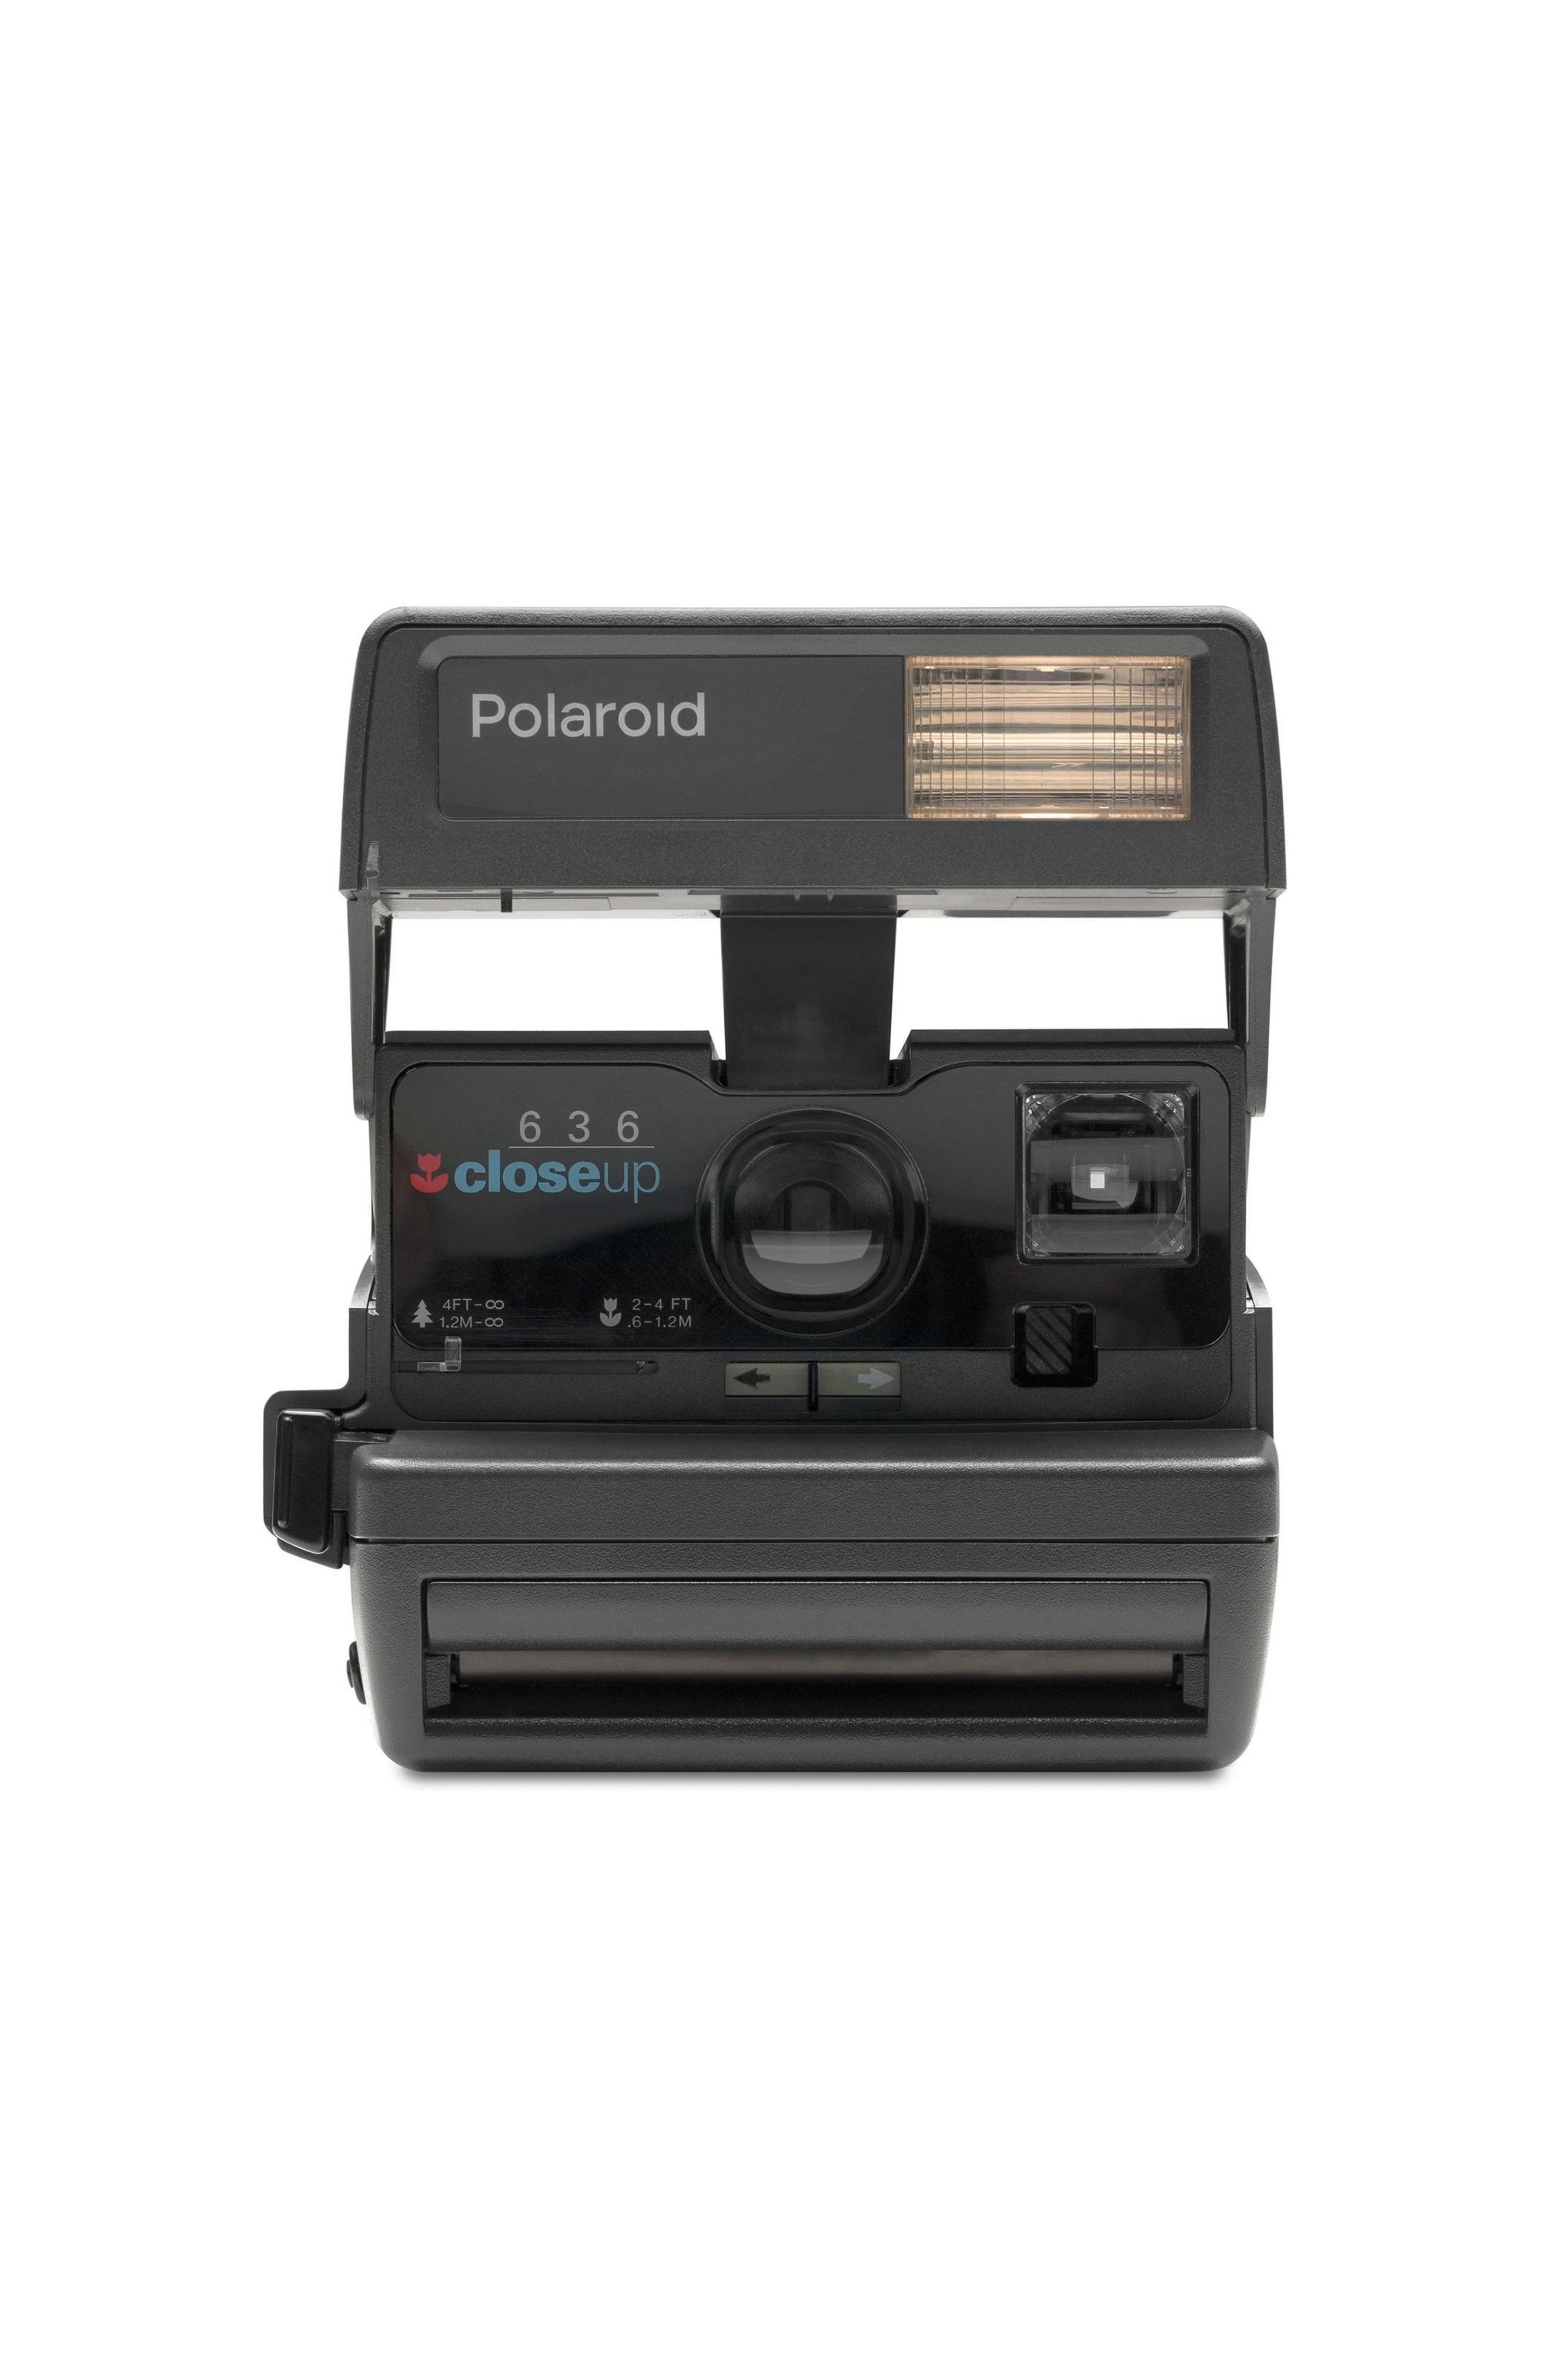 Impossible Project Polaroid 600 Onestep Closeup Instant Camera